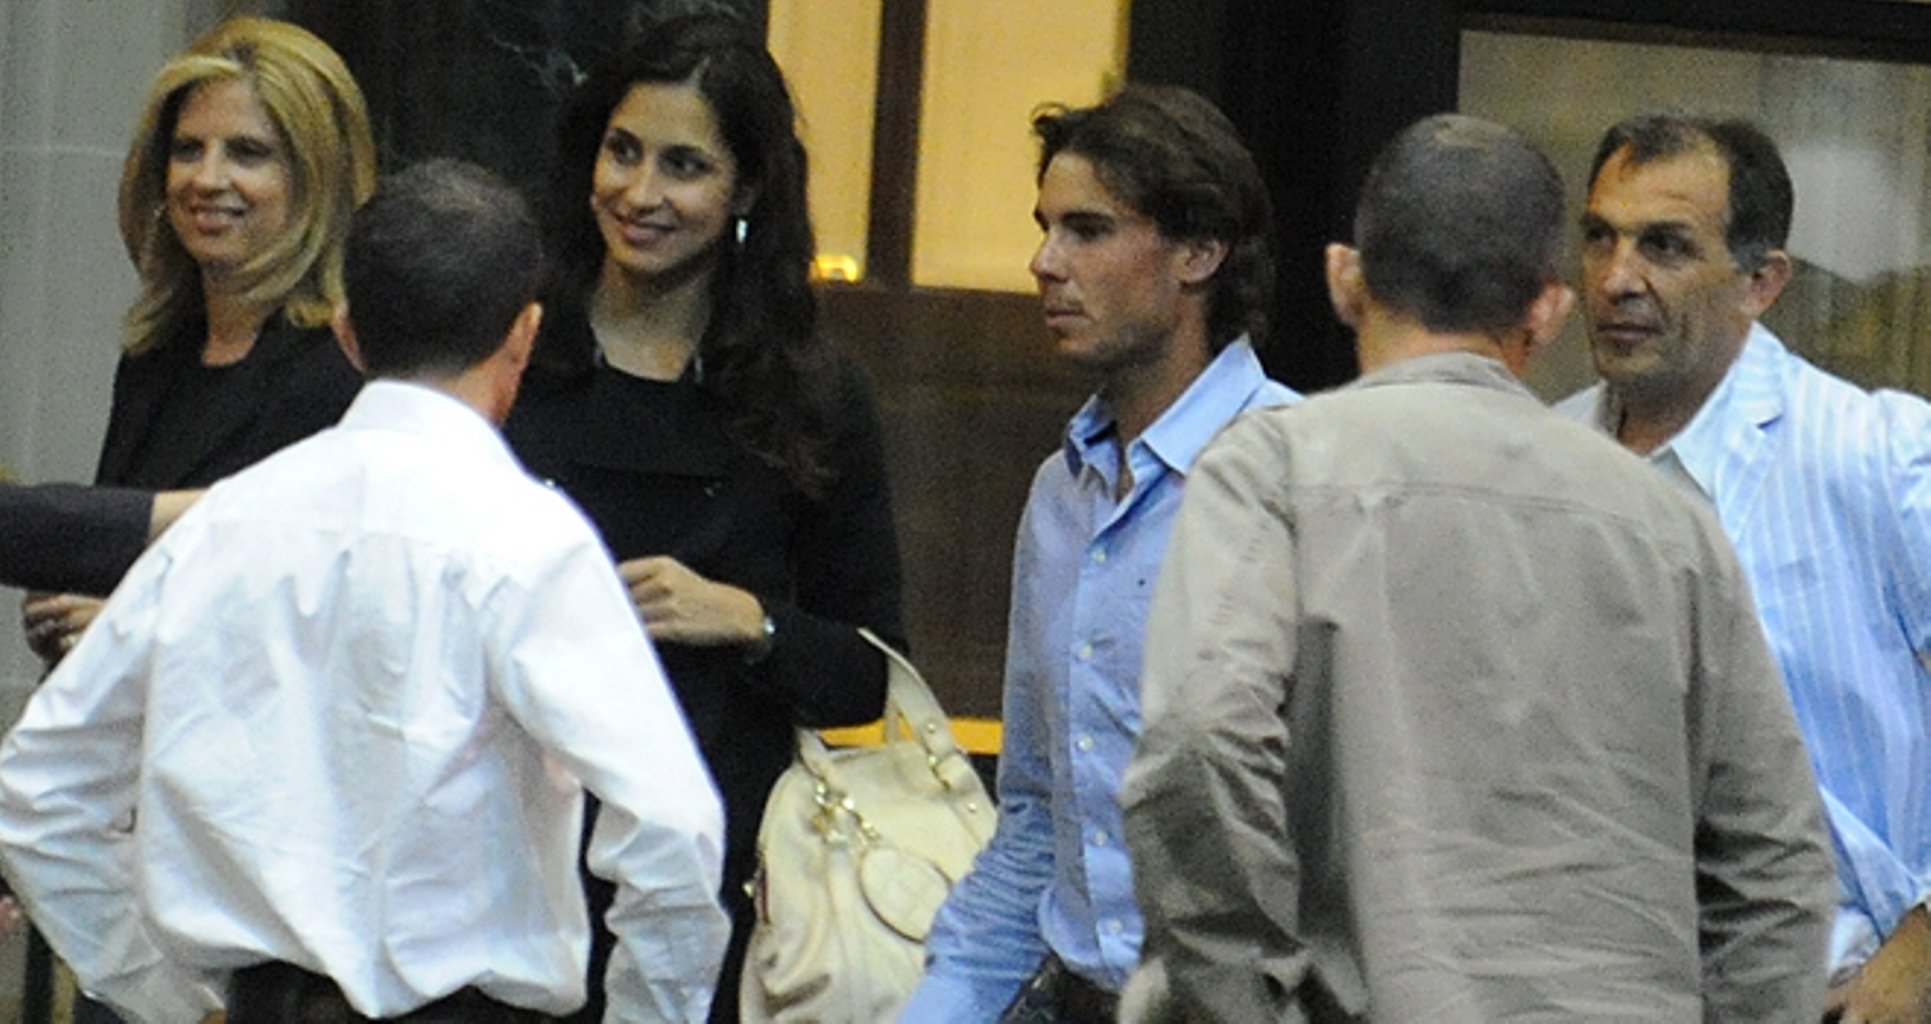 Xisca Will Have A Personal Bodyguard After The Wedding Rafael Nadal Photo 27679213 Fanpop